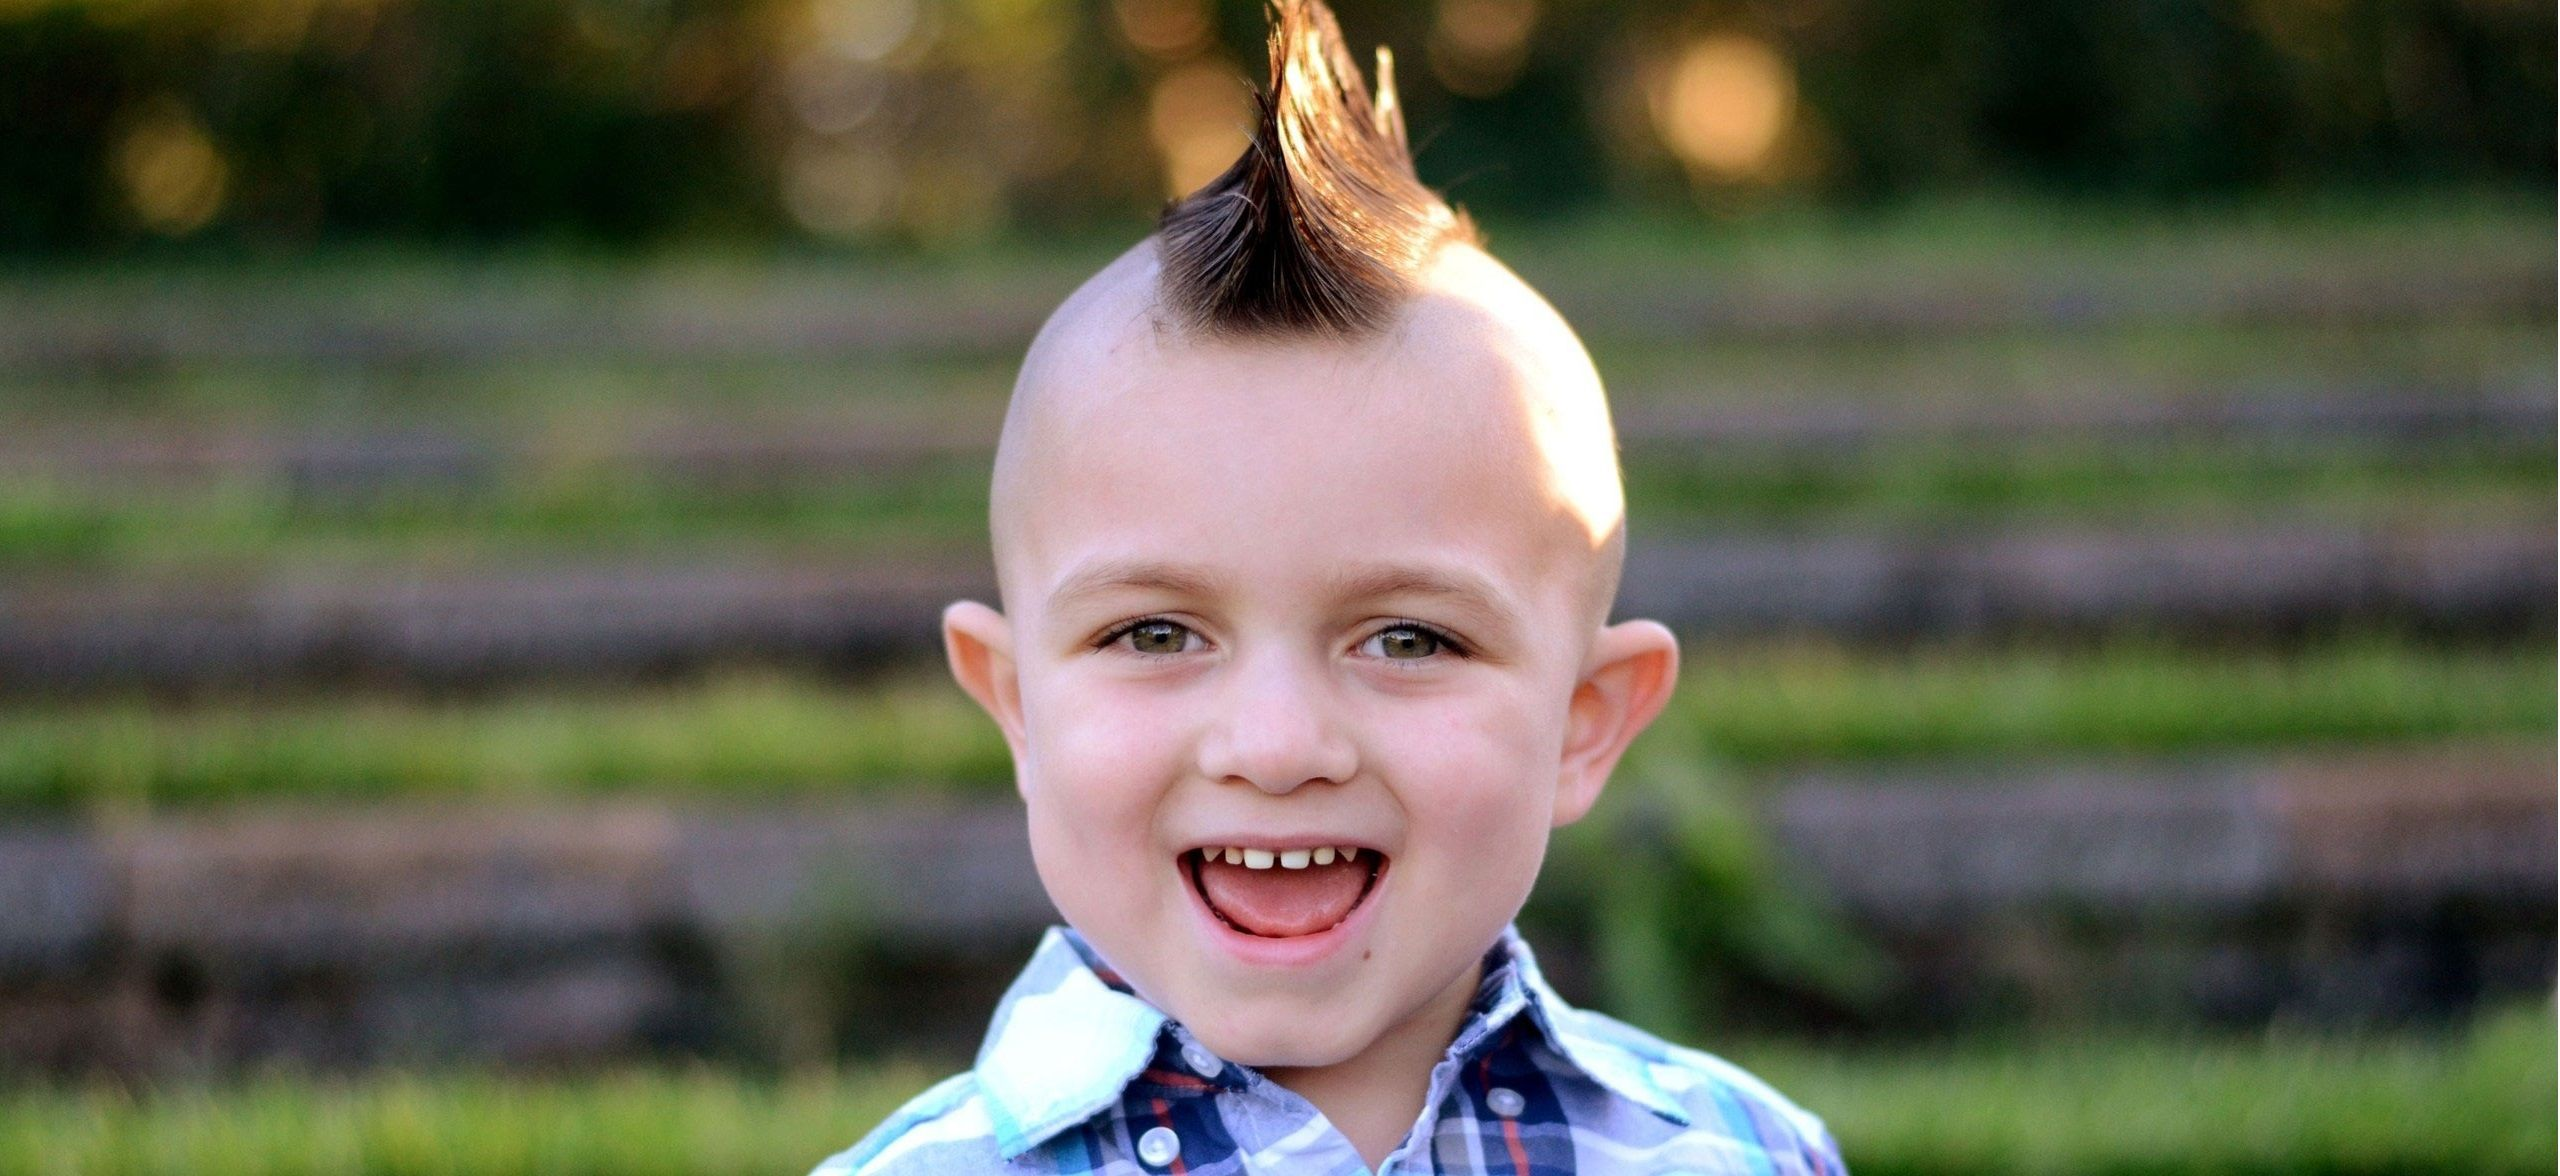 Check Out The Coolest Boys' Haircuts And Latest Hairstyle